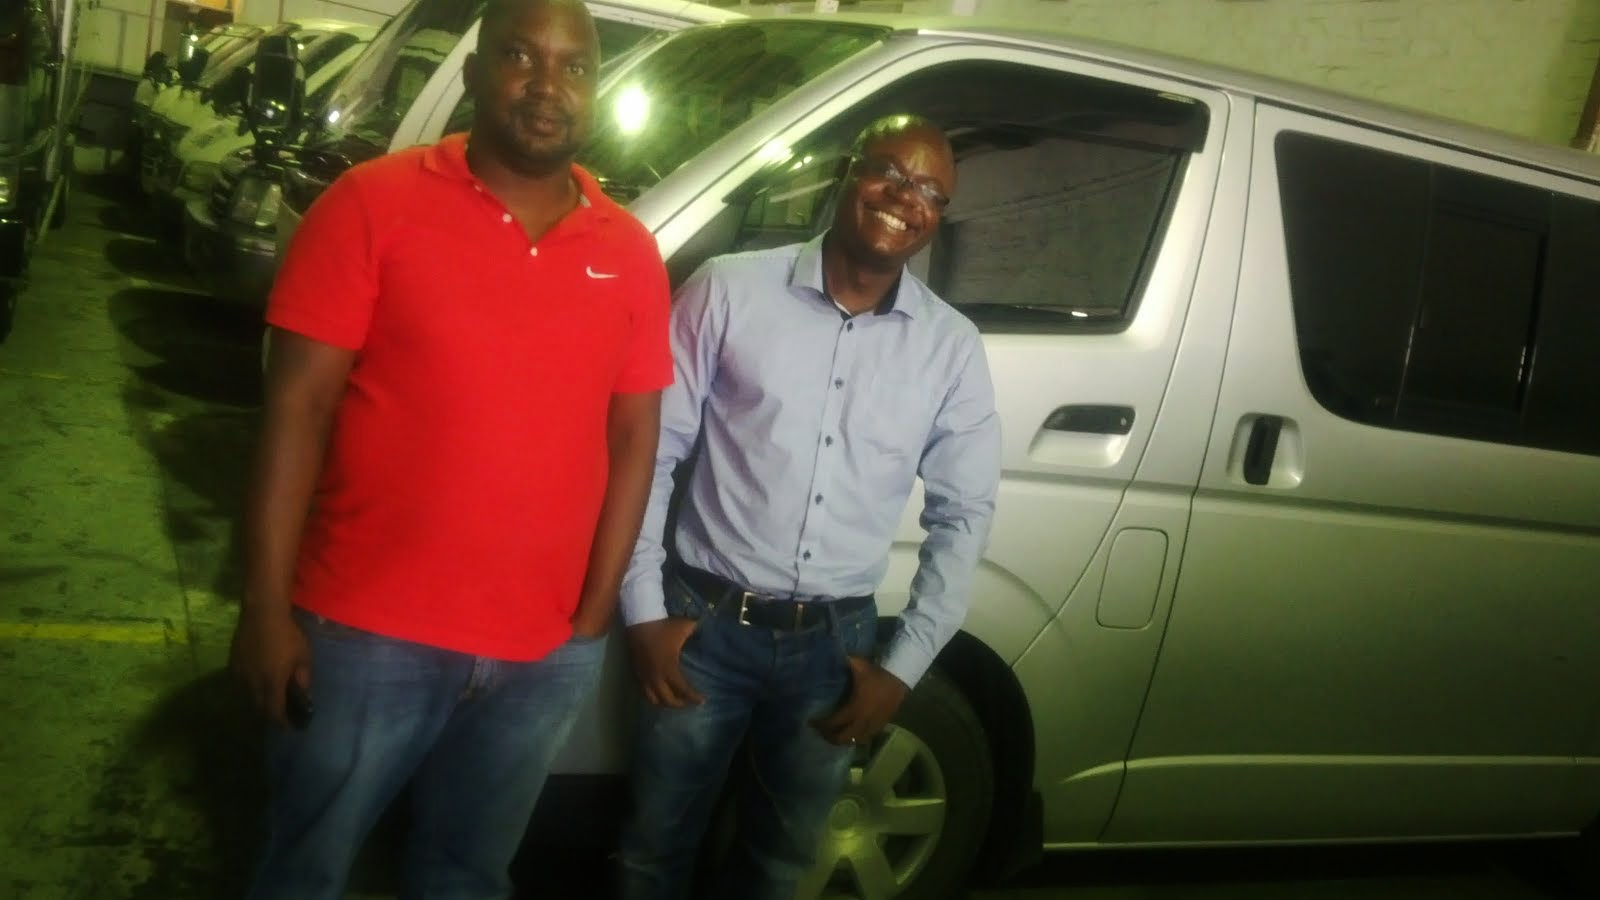 With Lebogang Busani From Botswana after He Bought A Used Japanese Toyota Hiace